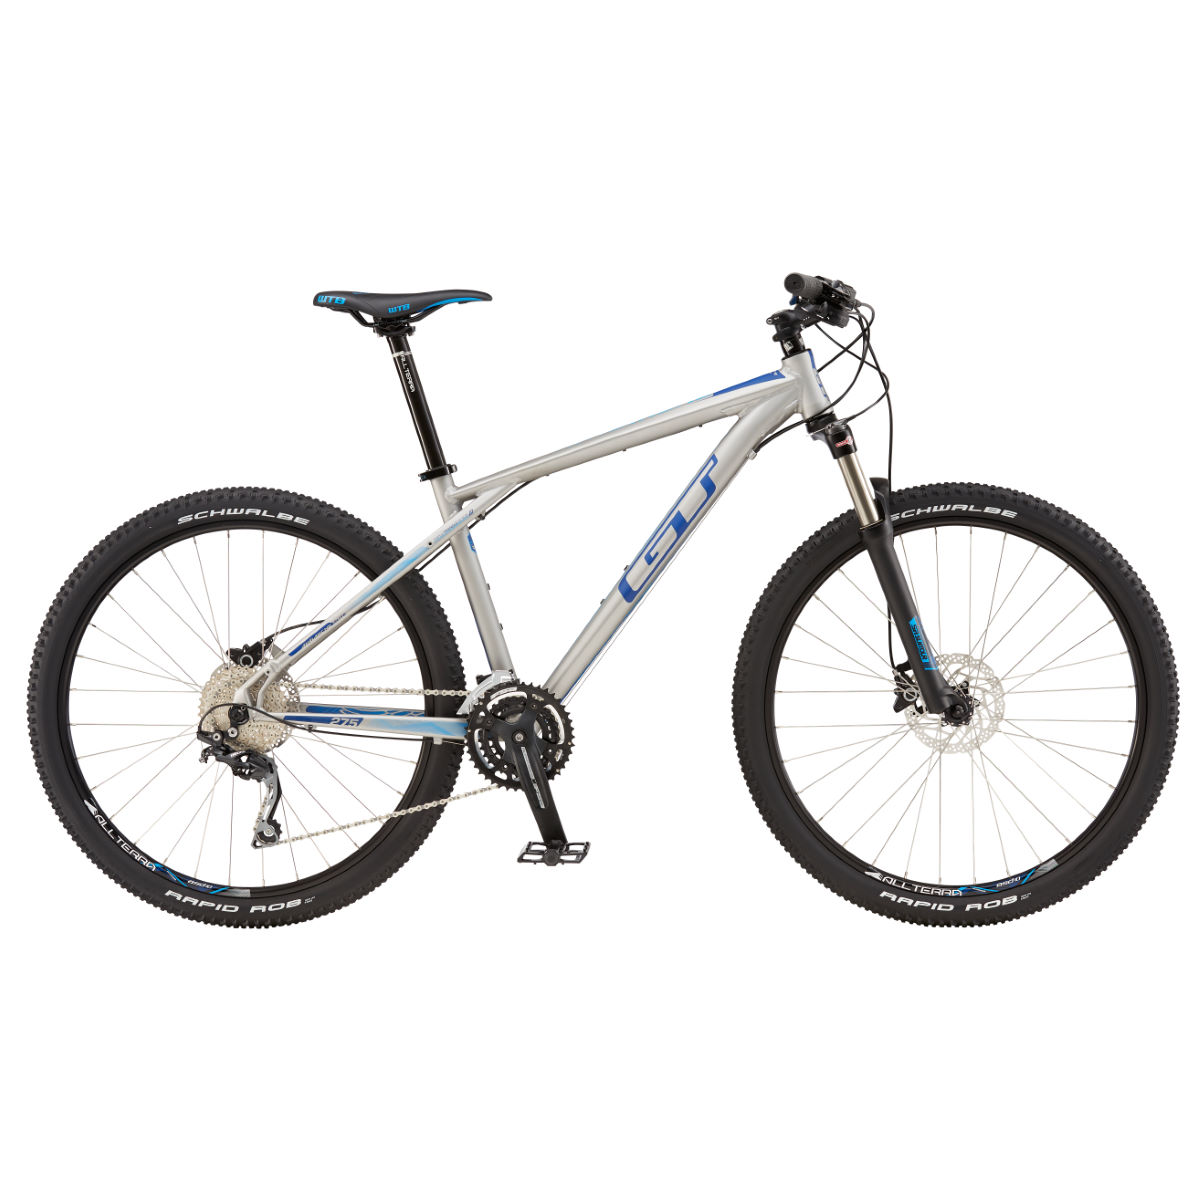 VTT GT Avalanche Elite (2016) - XL Raw VTT semi-rigides